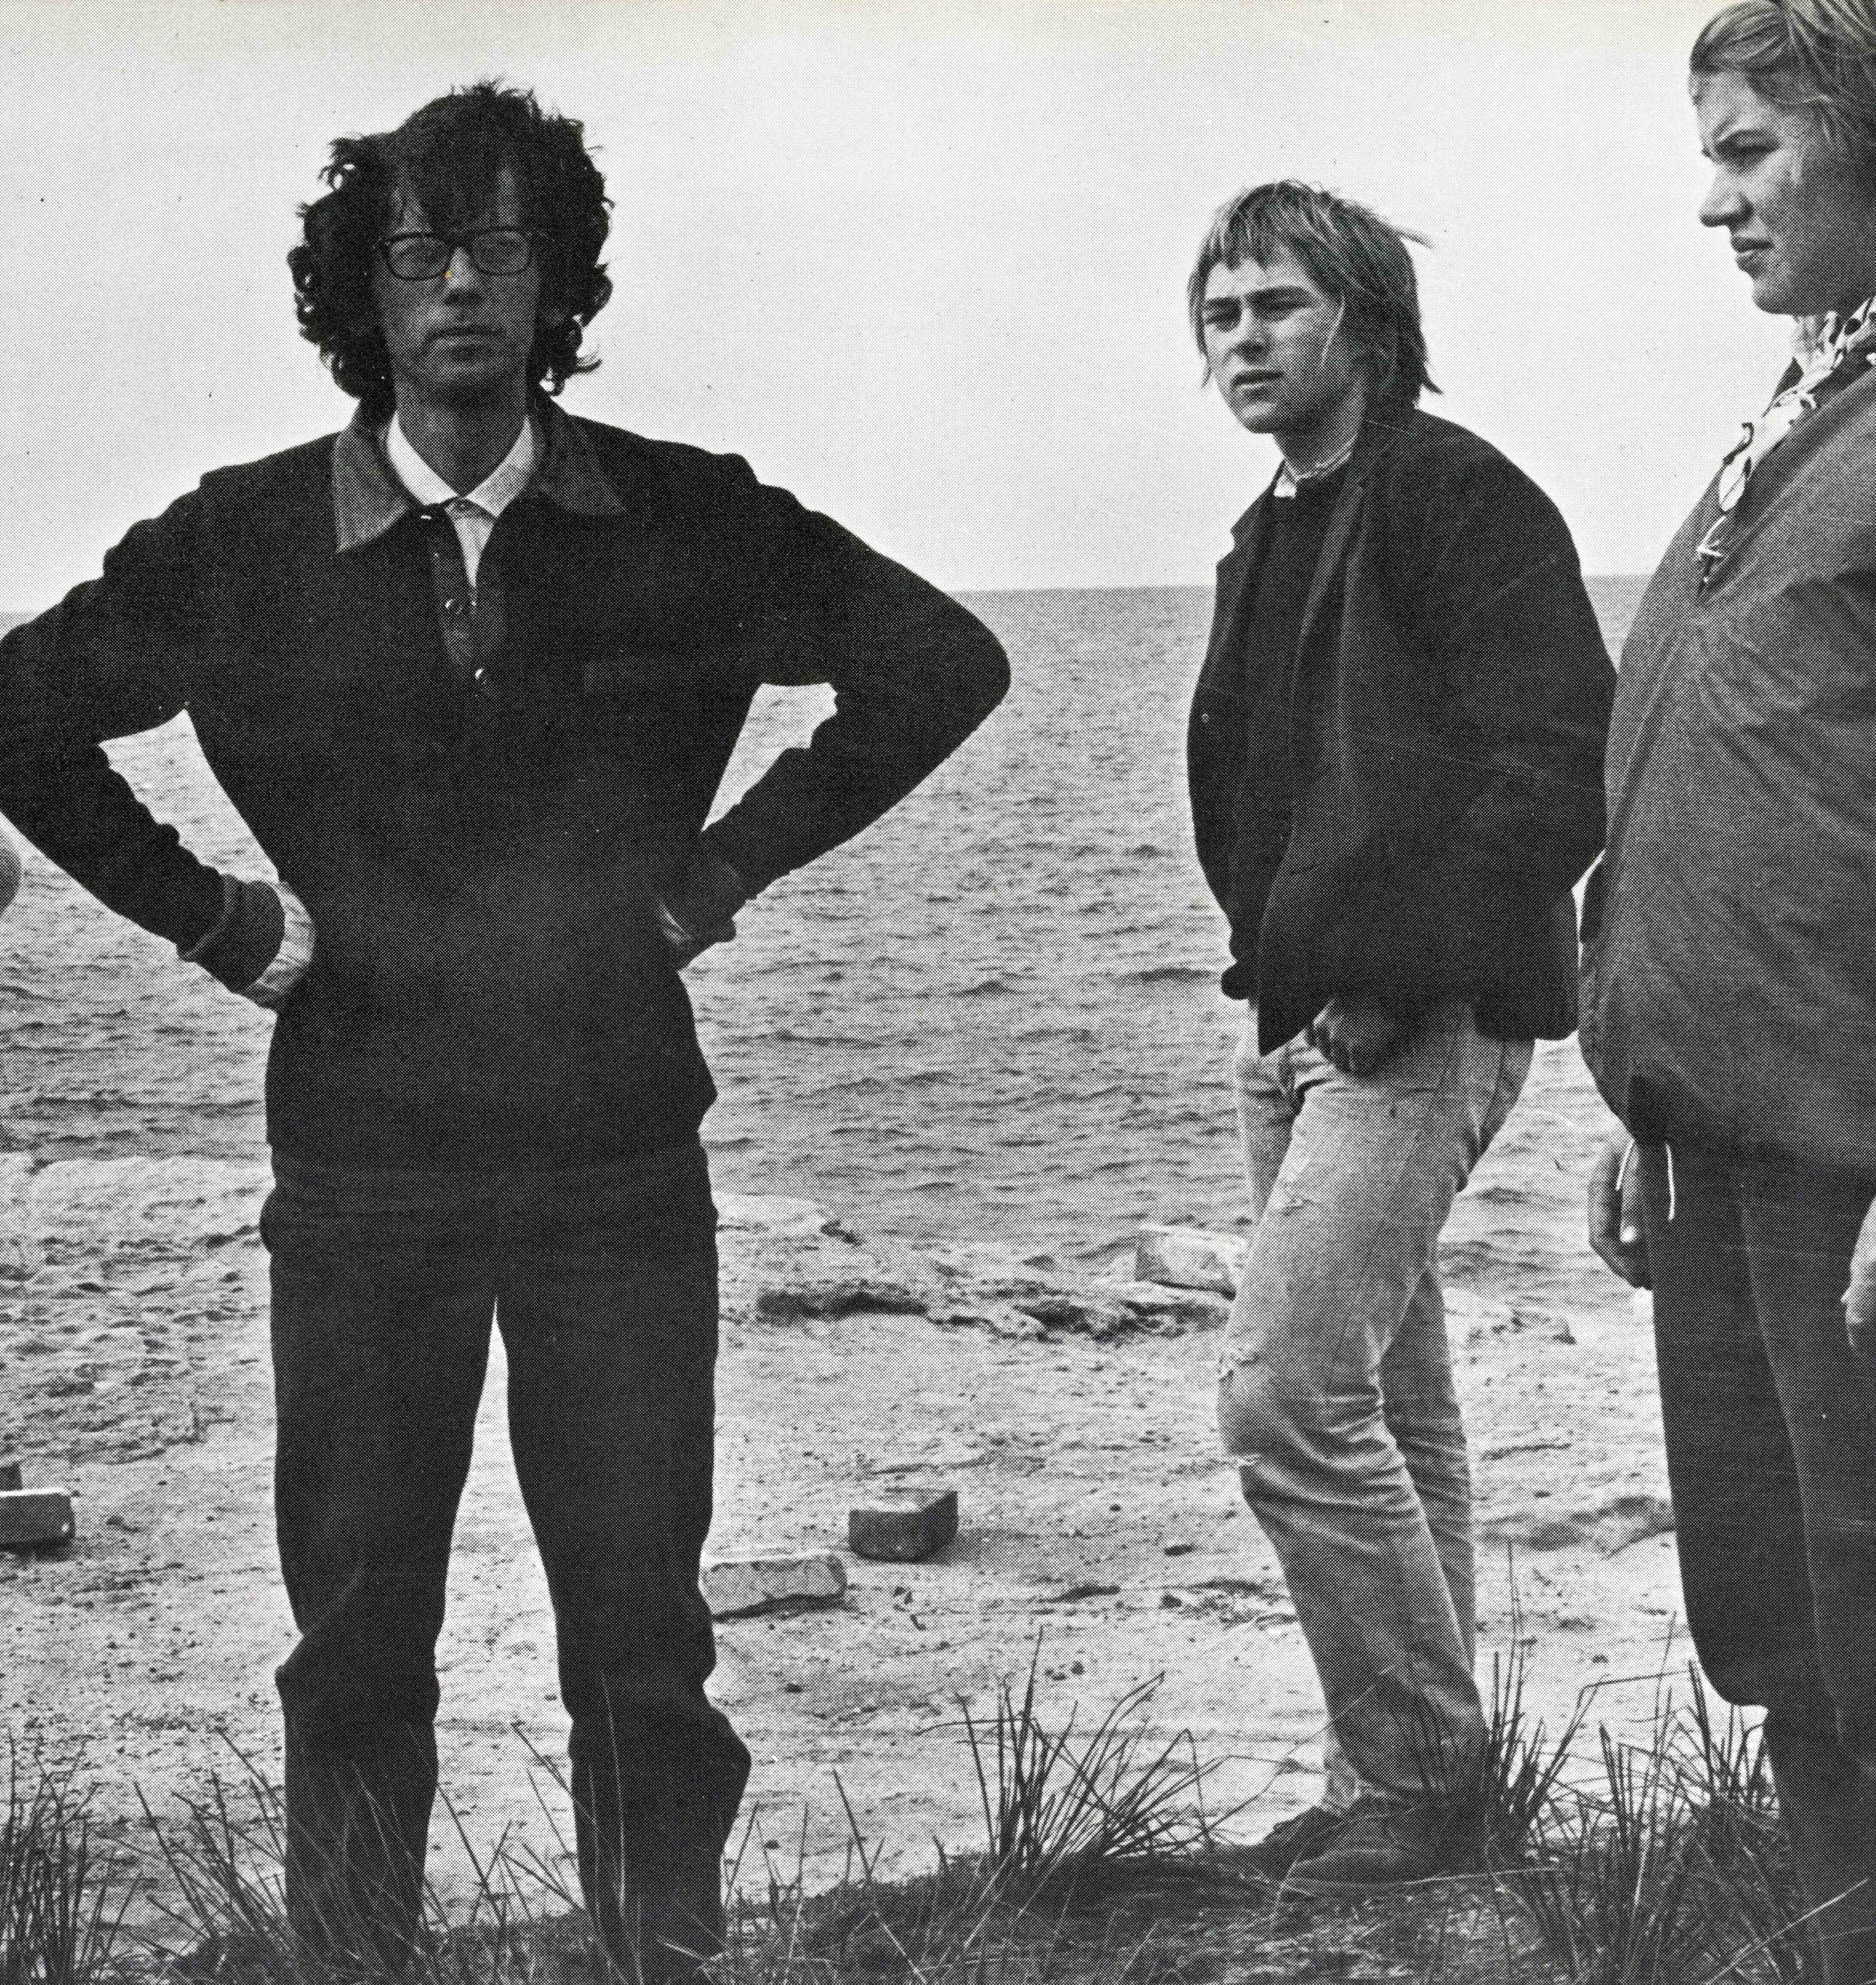 Christo with Imants Tillers at Little Bay, Sydney in 1969